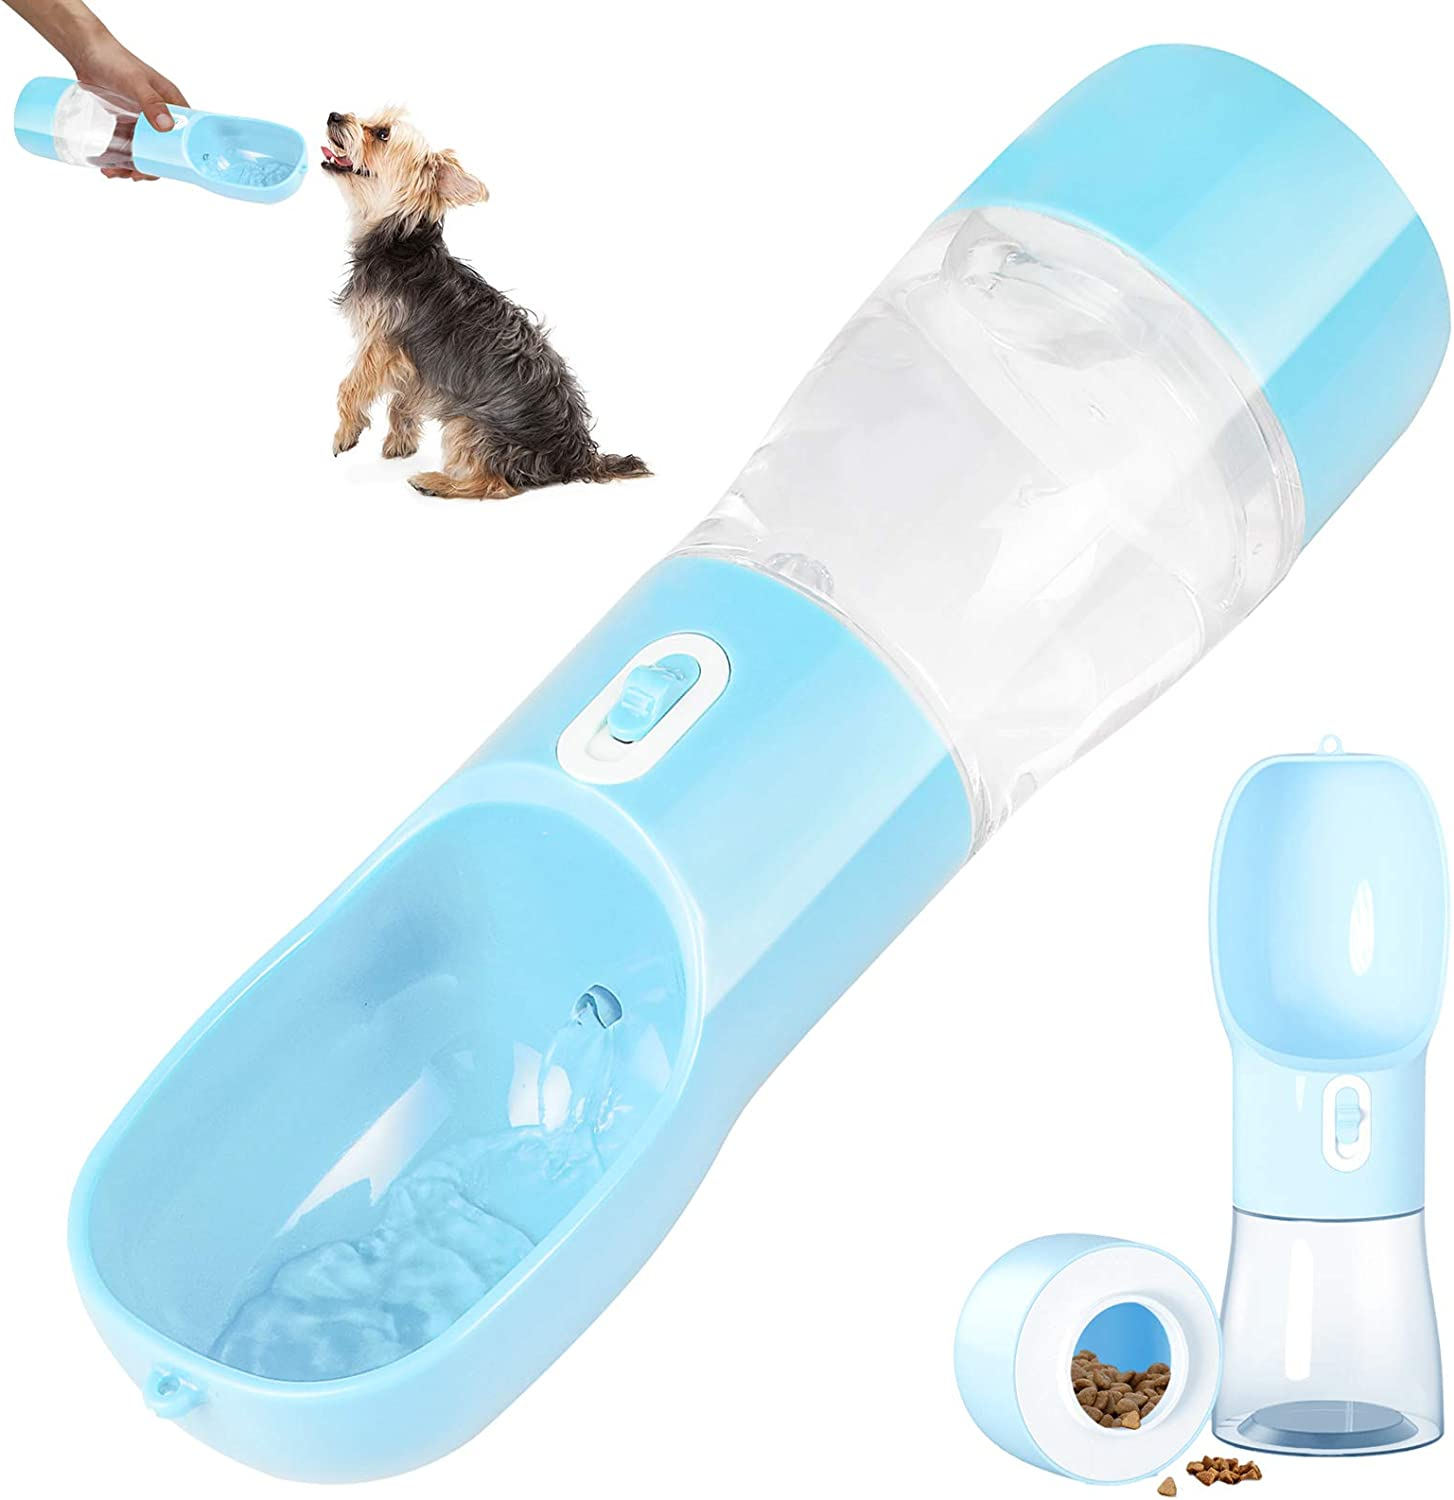 iiDesign Dog Water Bottle for Walking, Portable Dog Water Bottles with Drinking and Feeding Function, Dog Travel Water Bottle, Pet Water Bottle for Outdoor Hiking Walking Travel